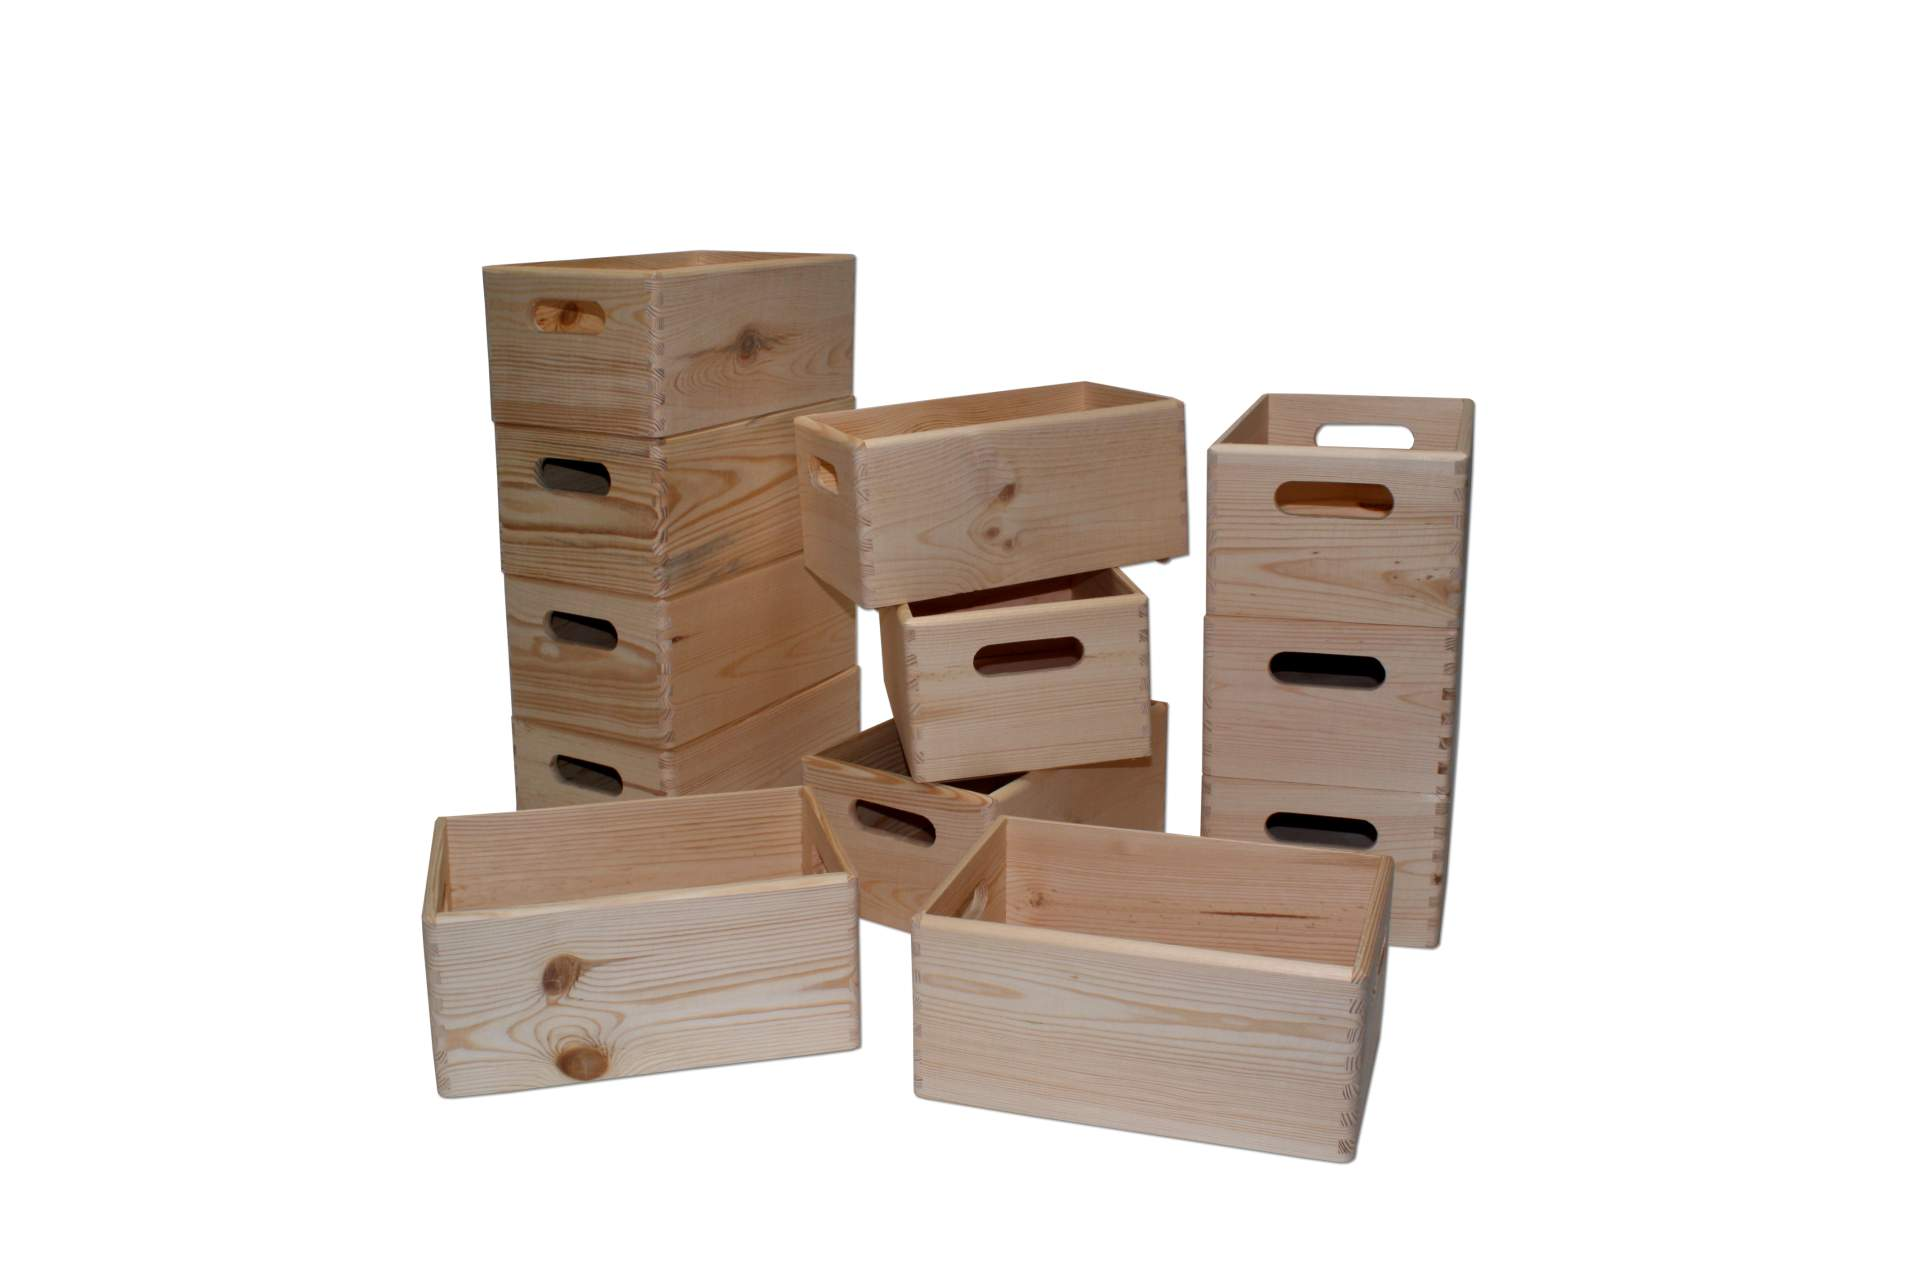 12 set allzweck box 30x20x14 cm kiste holz stapelbar 12 st ck w sche spielzeug ebay. Black Bedroom Furniture Sets. Home Design Ideas